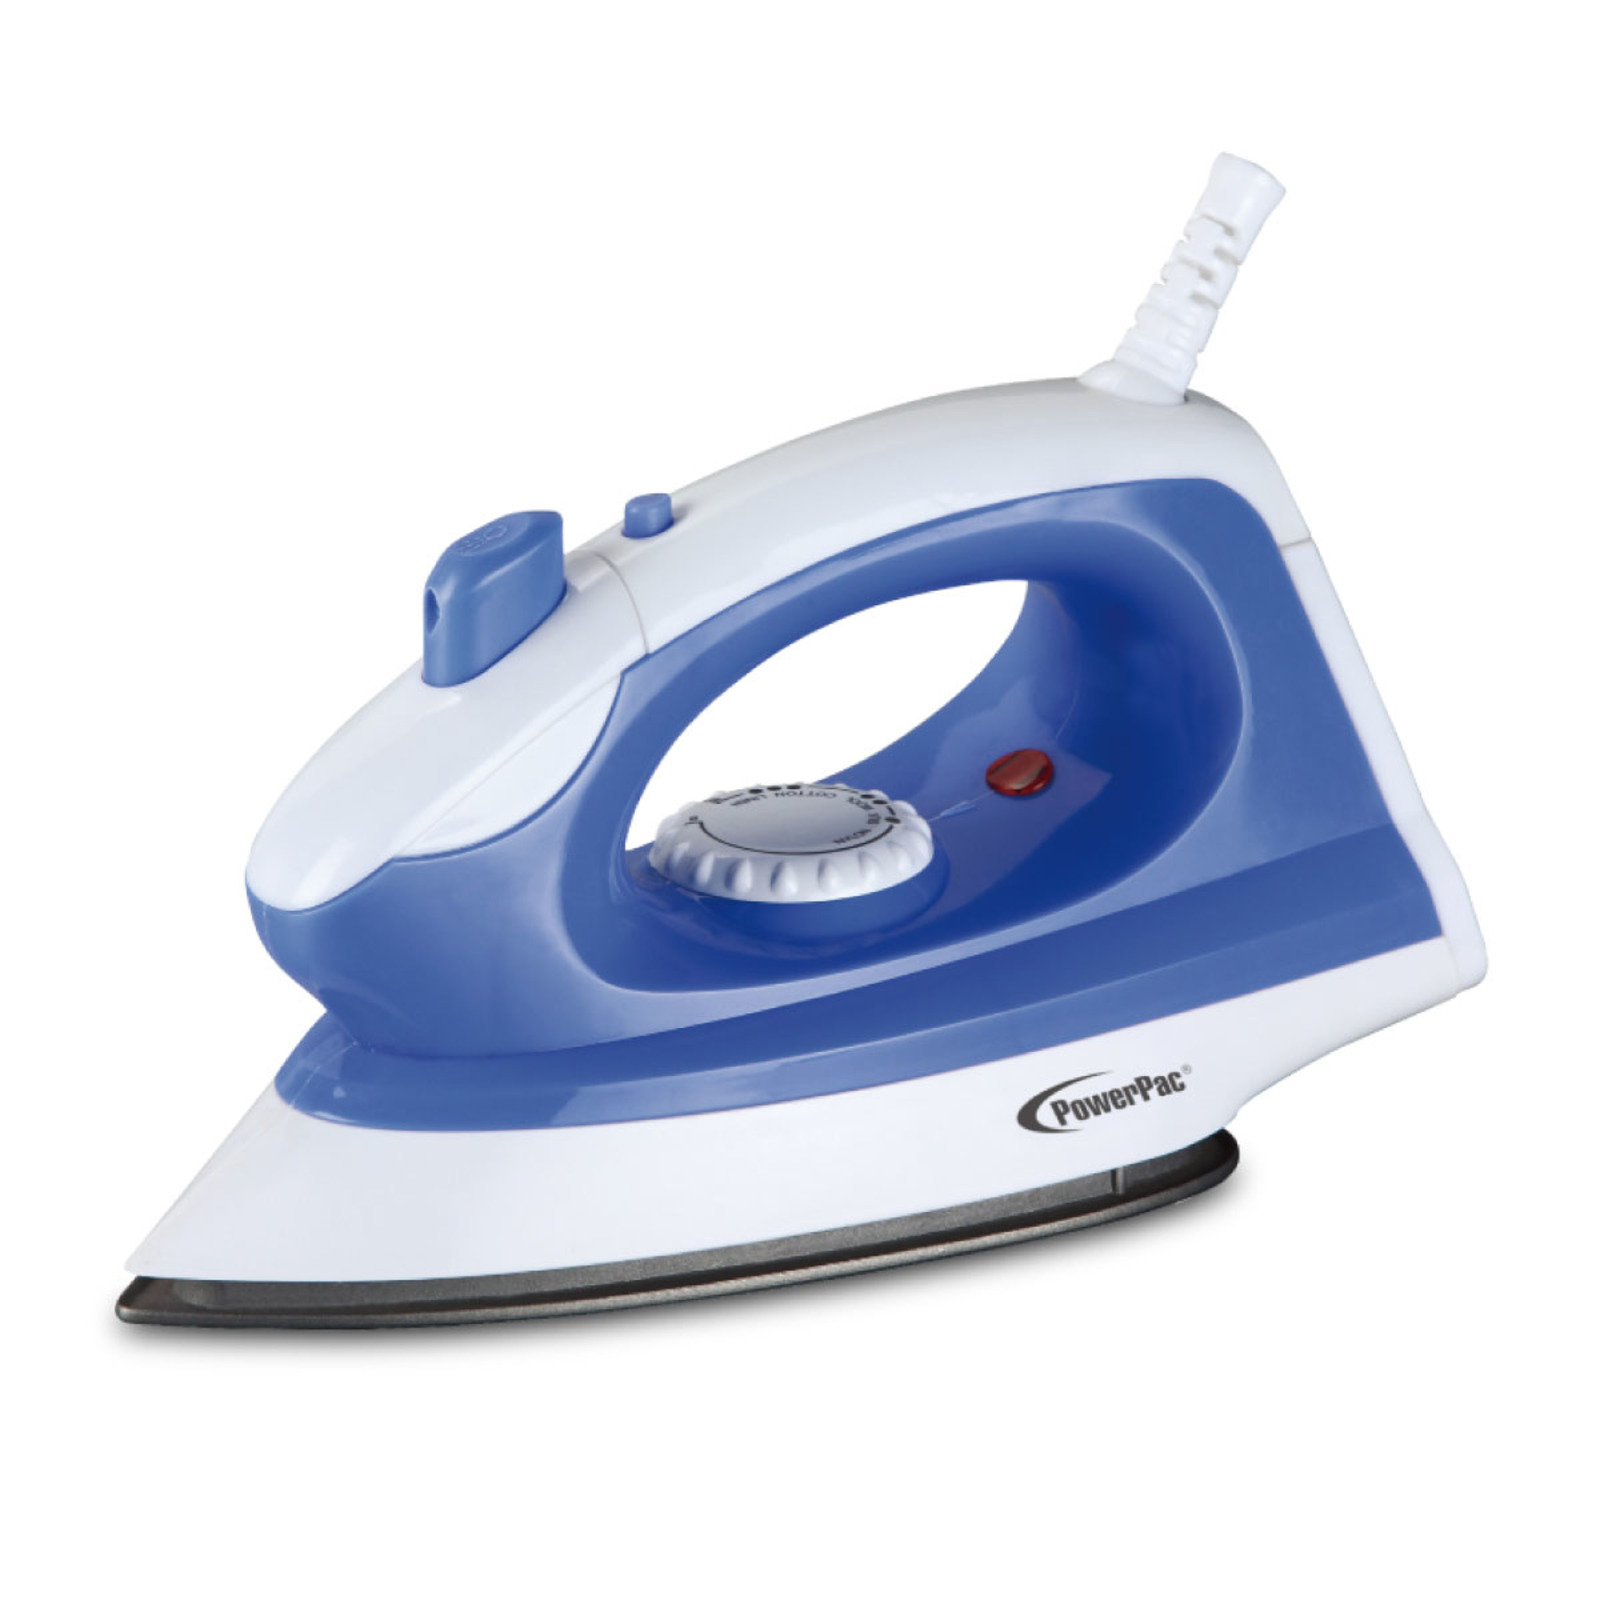 PowerPac Dry & Spray Iron 1000W PPIN1000